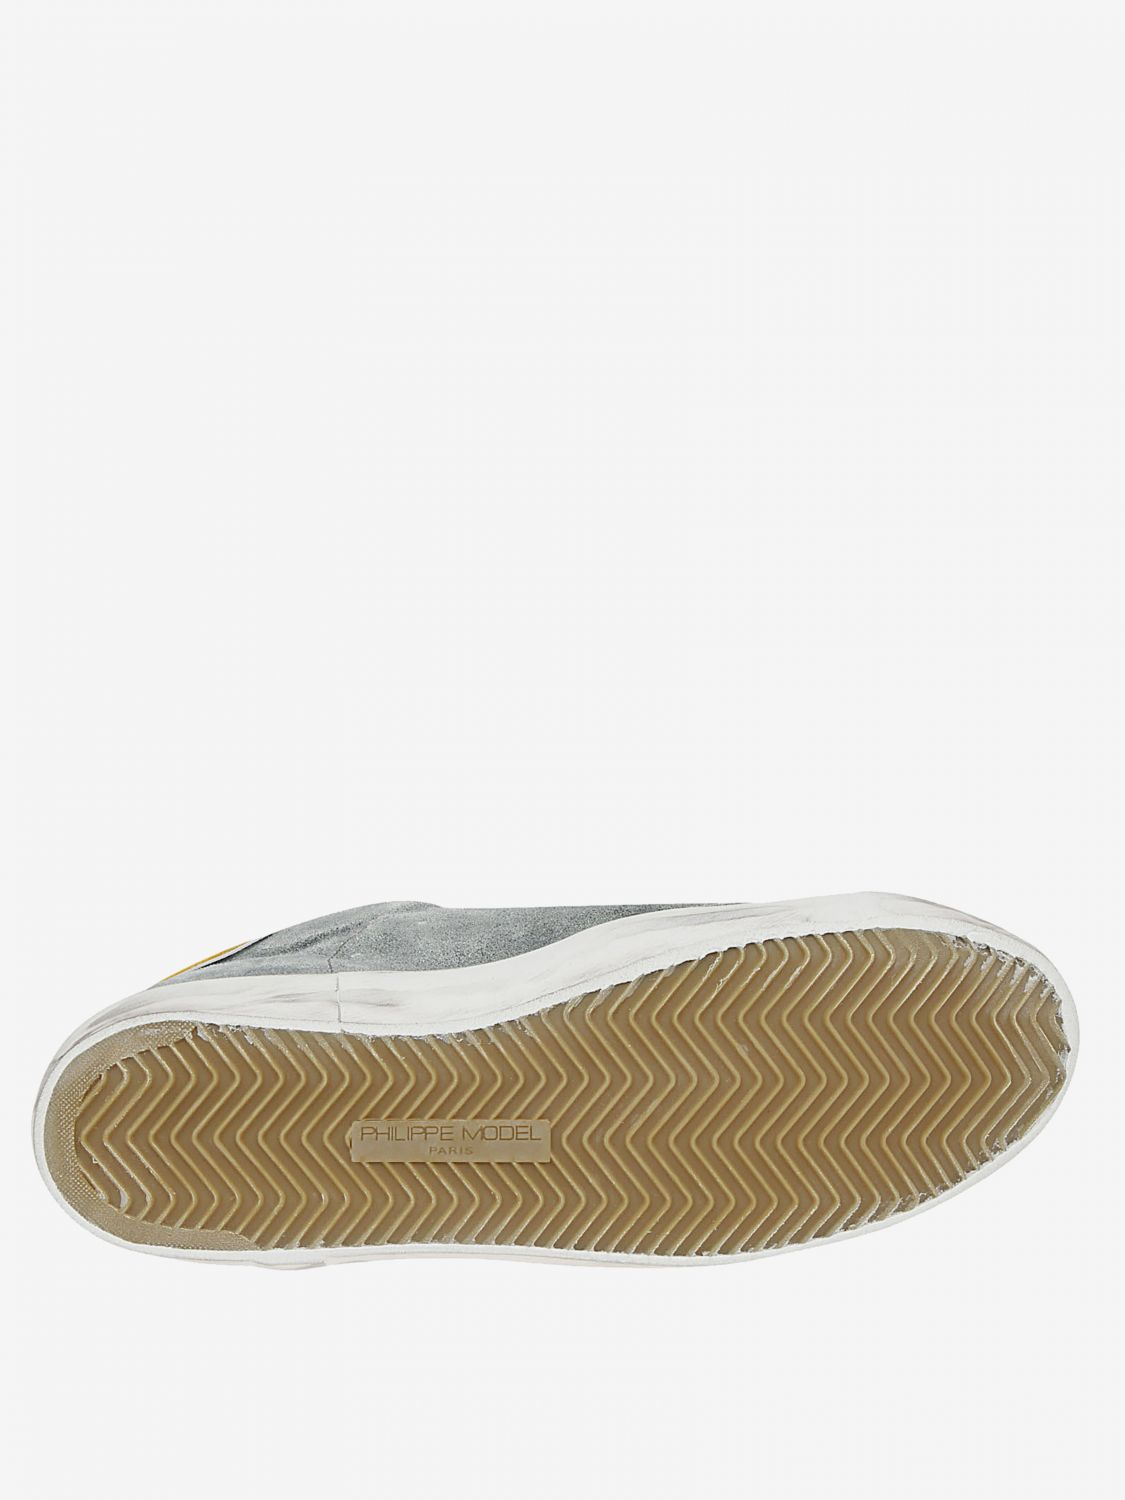 Chaussures homme Philippe Model vert militaire 5